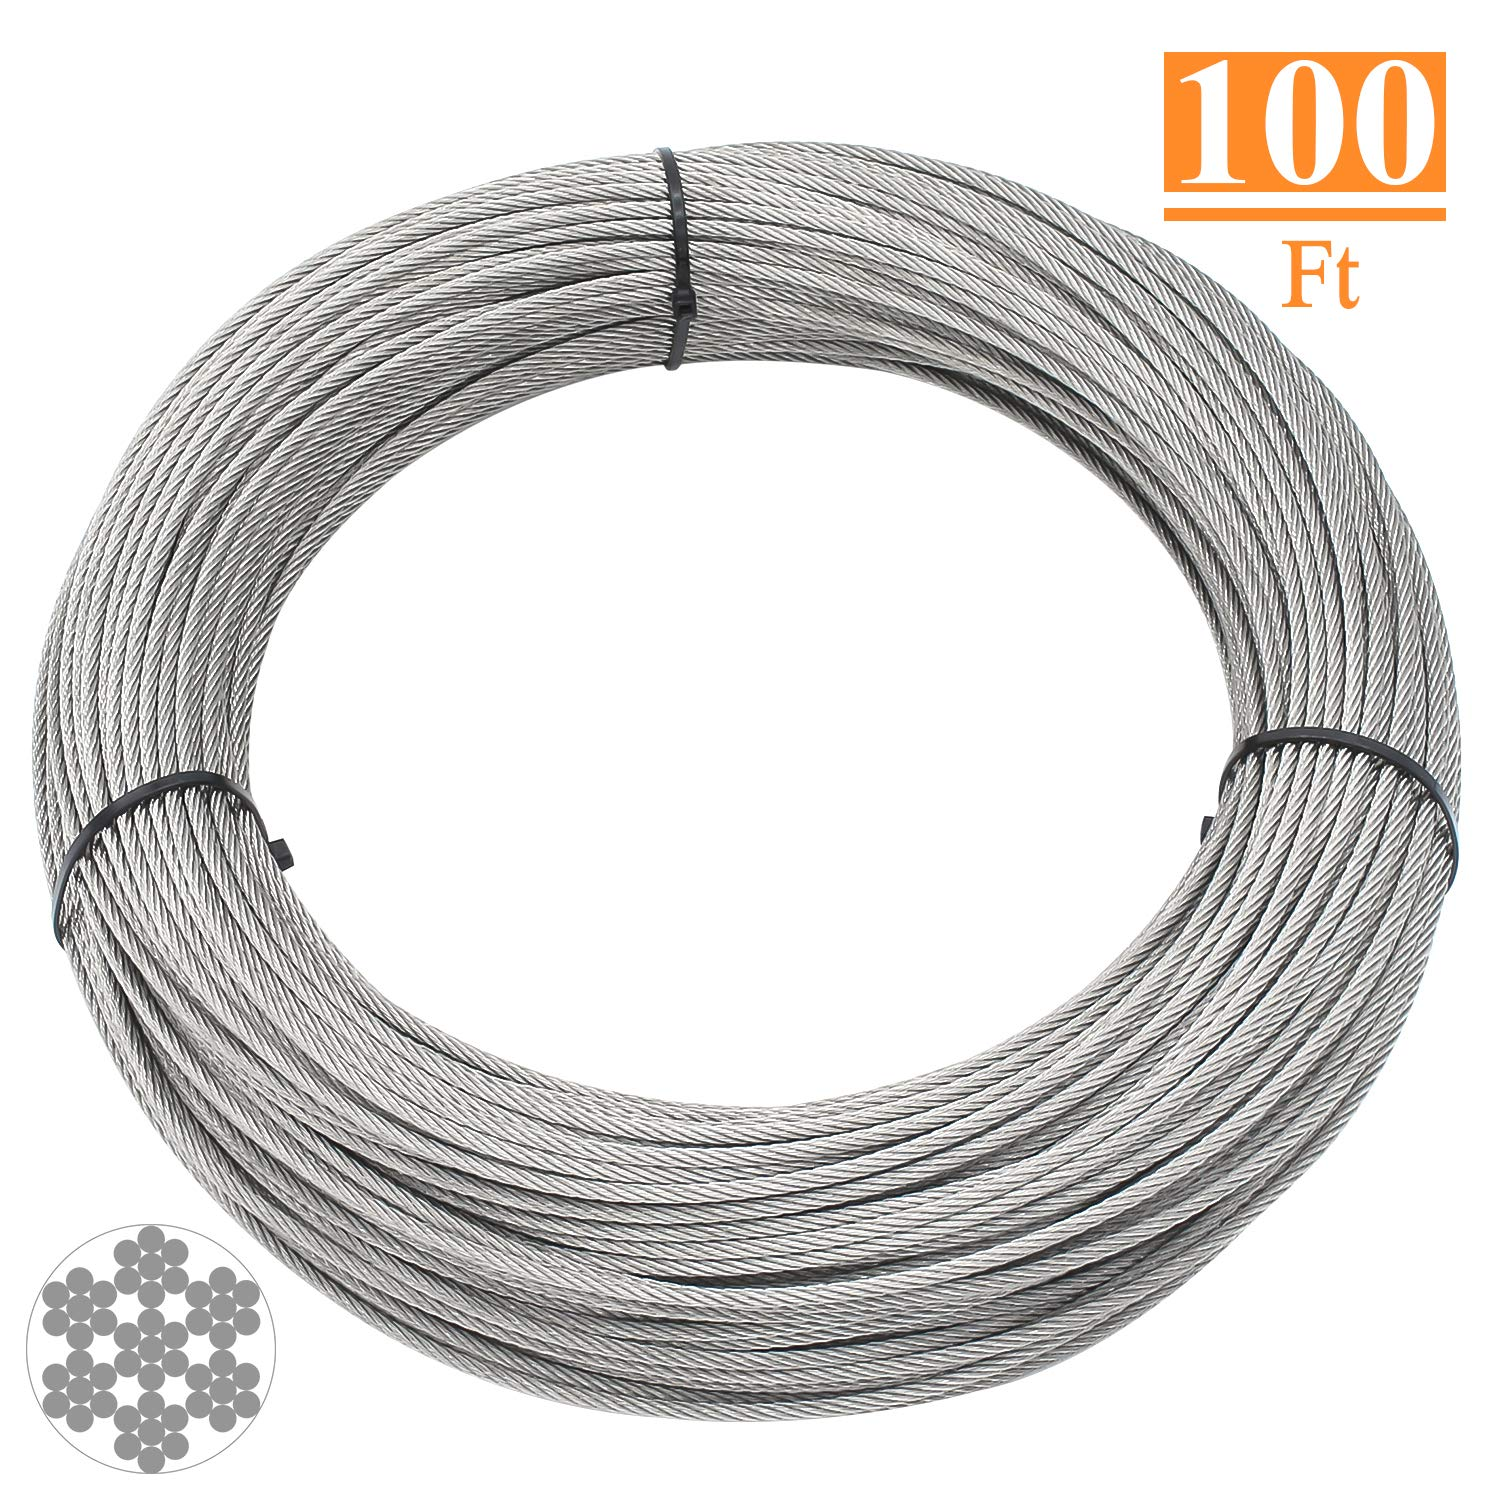 HELIFOUNER T316 Marin Grade 1/8 inch Stainless Steel Aircraft Wire Rope Cable for Railing, Decking, DIY Balustrade, 100 Feet by HELIFOUNER